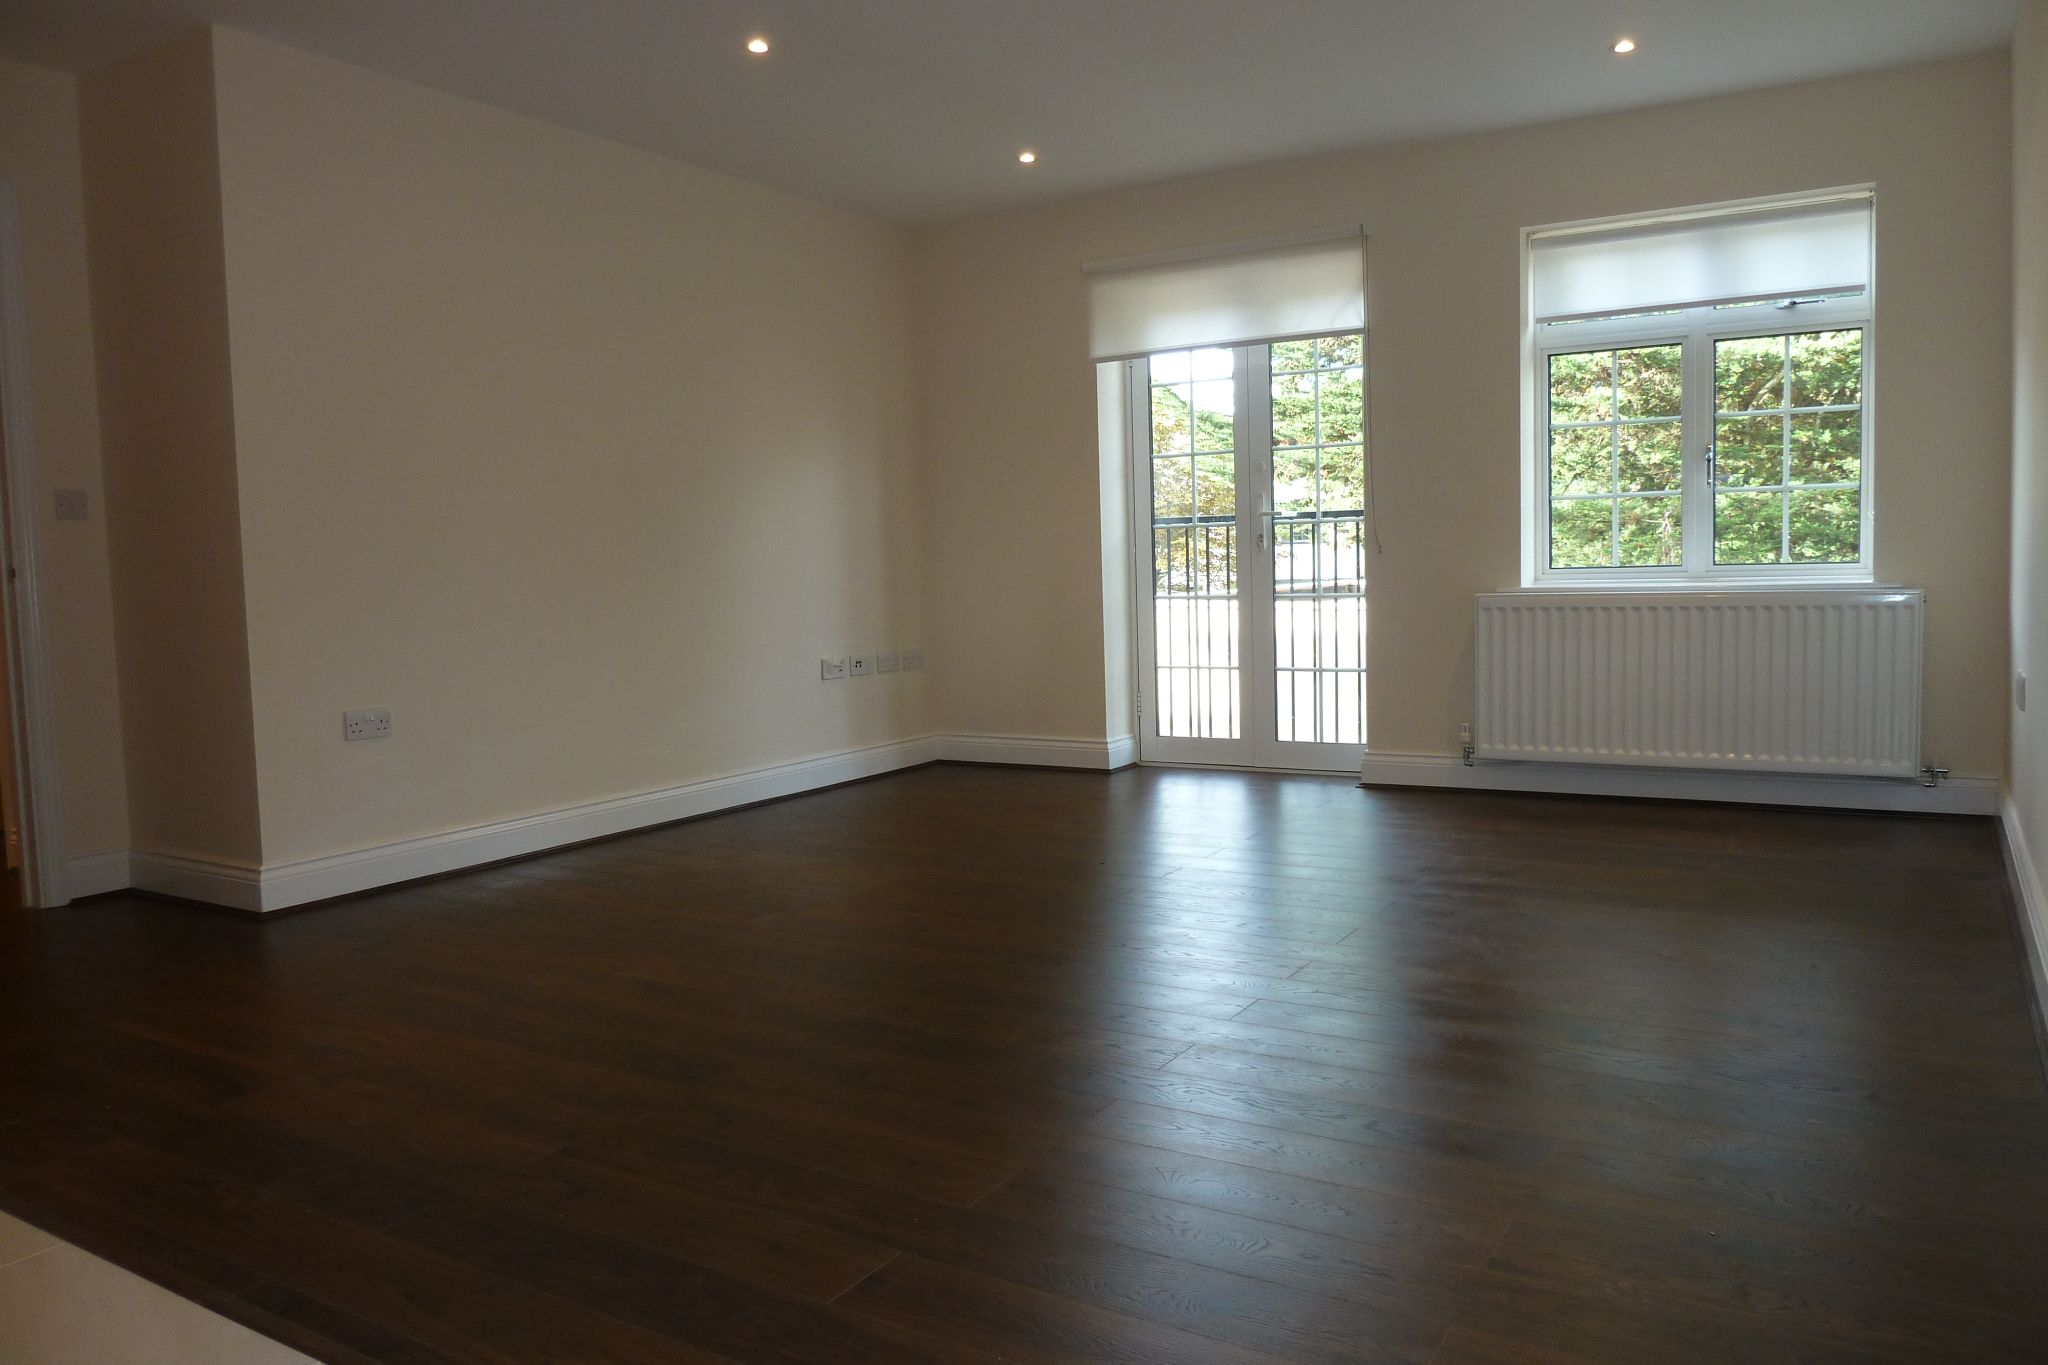 2 bedroom apartment flat/apartment Under Offer in Harrow On The Hill - Laminate flooring throughout